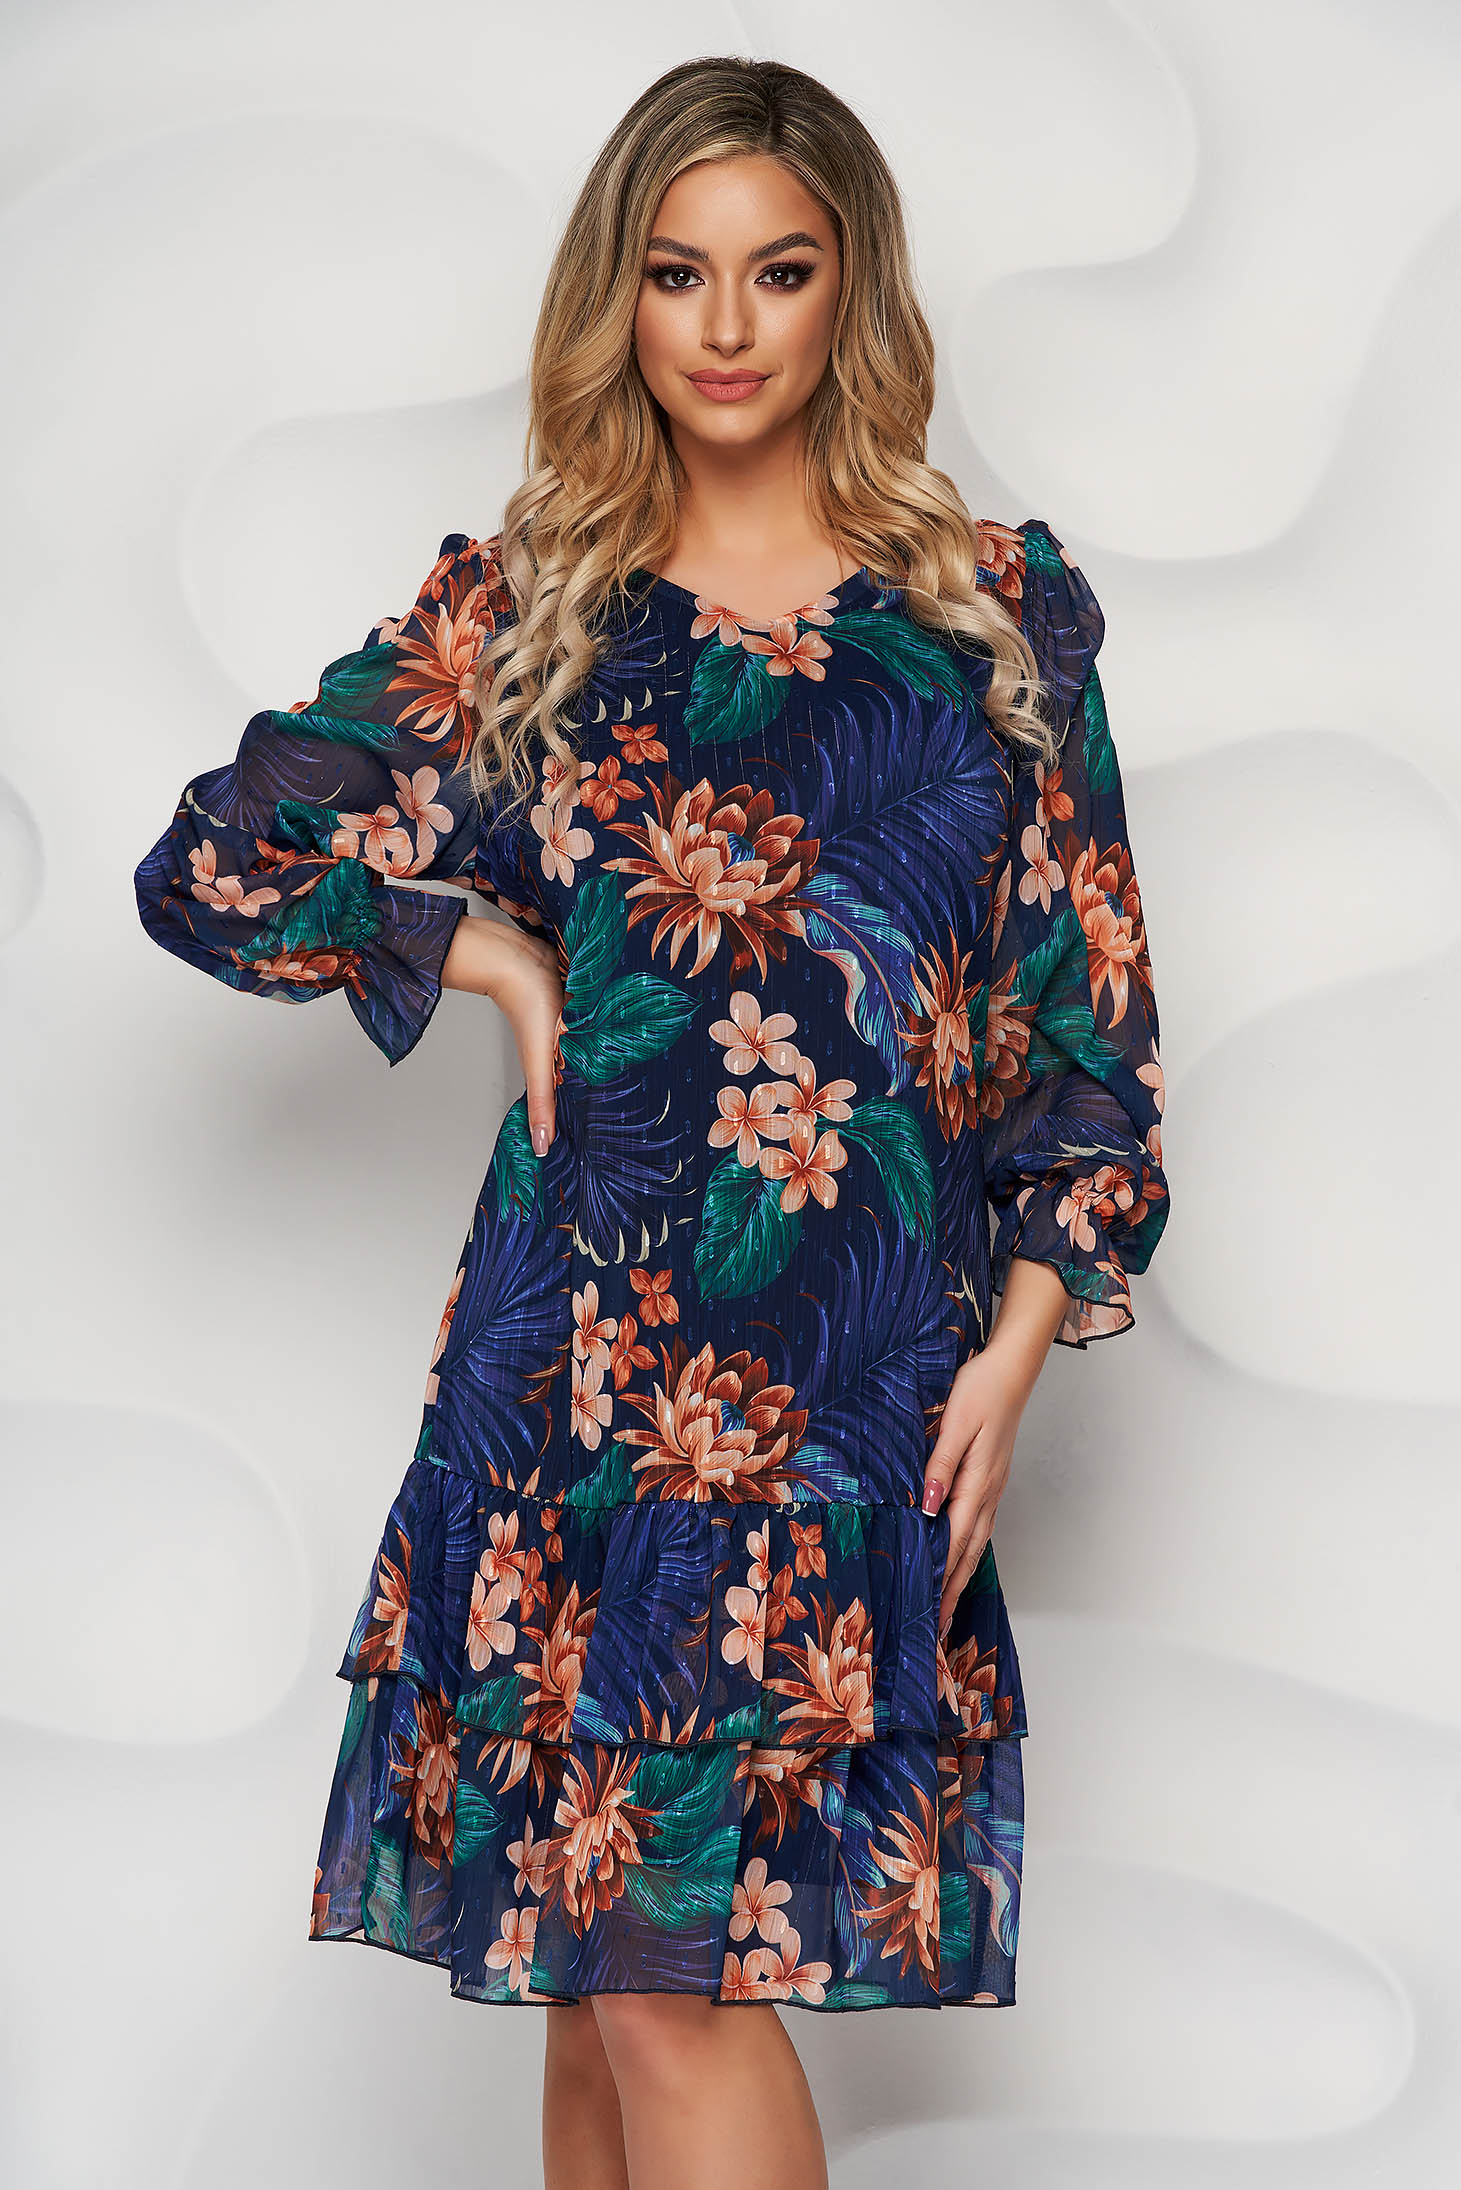 Dress with floral print from veil fabric with ruffle details straight